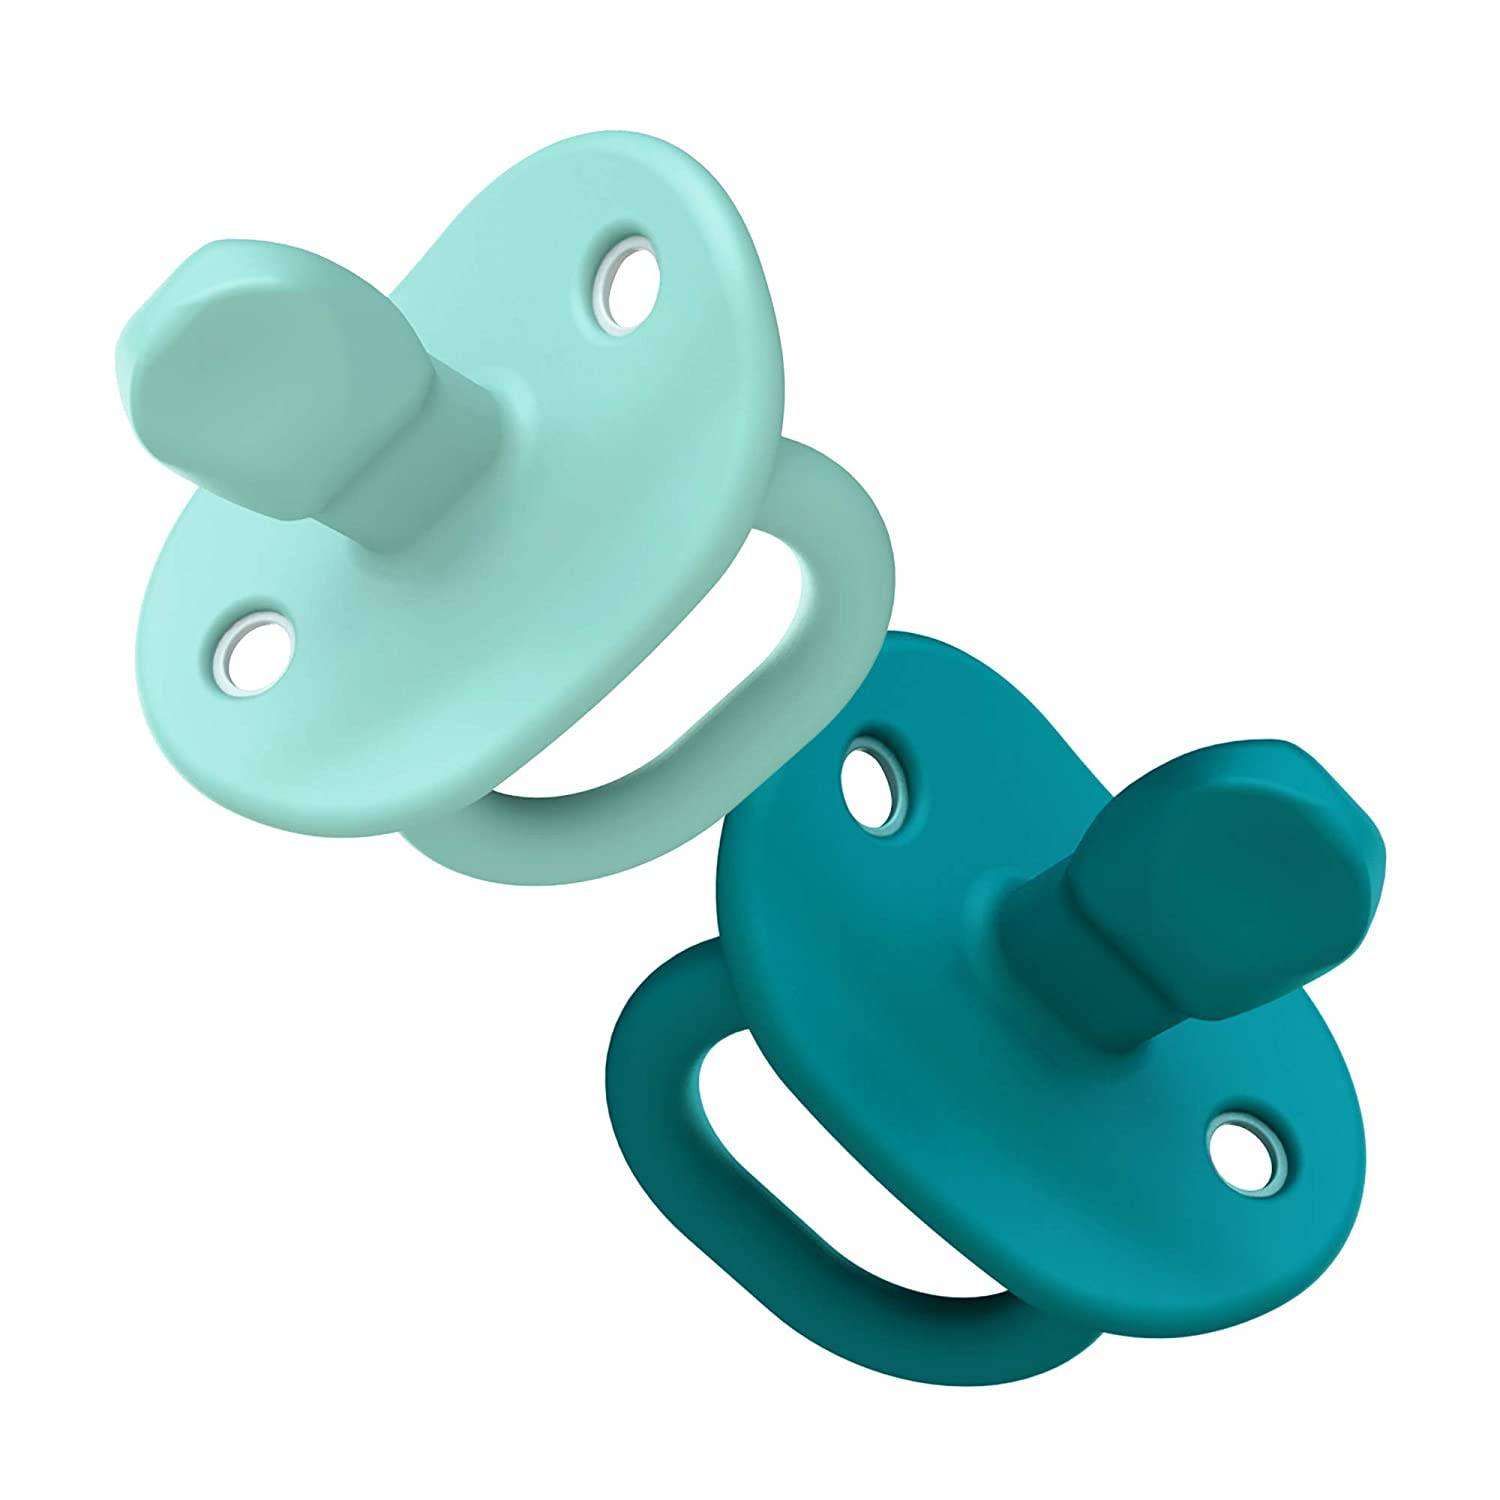 Boon JEWL Orthodontic Silicone Stage 2 Pacifier, 2 pack, Blue